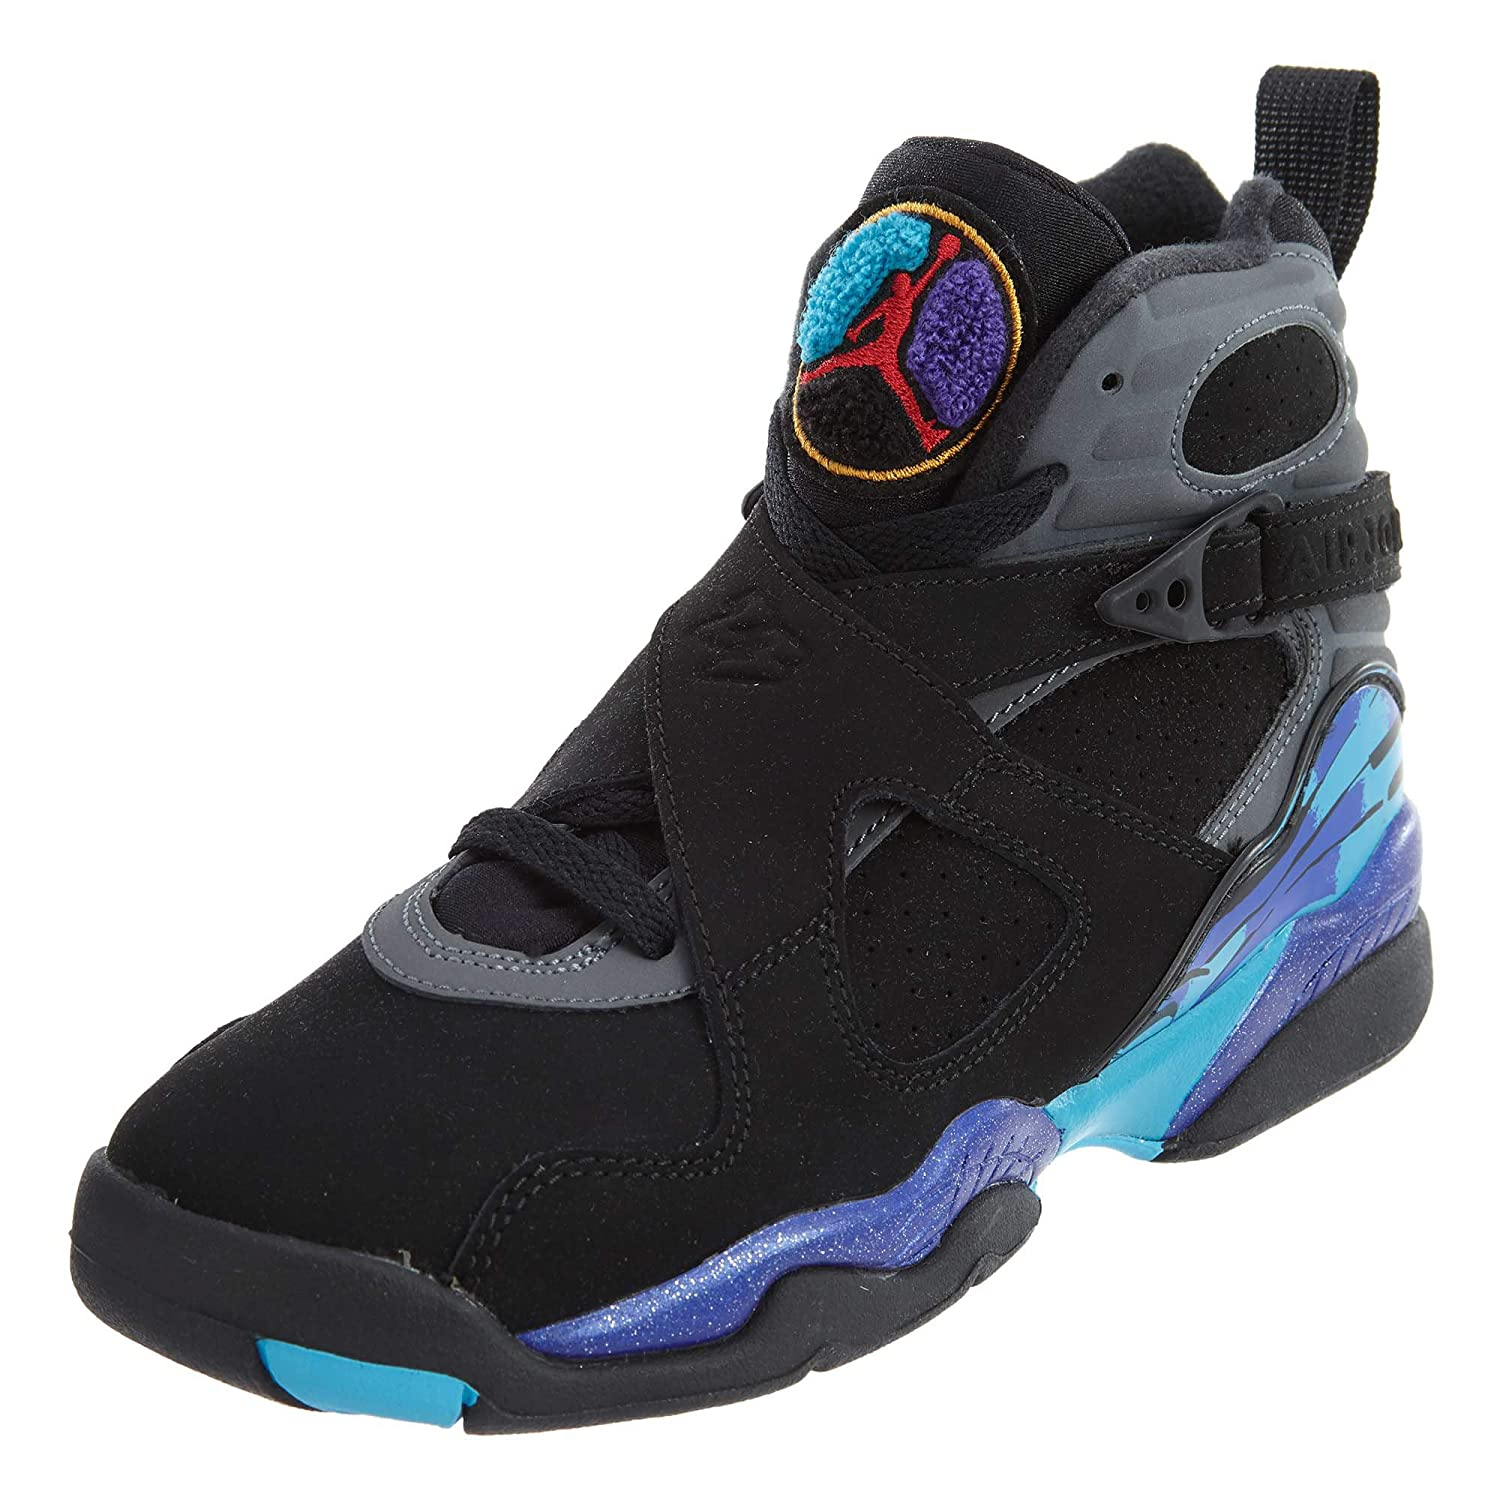 brand new 4e129 e12d6 Jordan Nike Air 8 Retro Aqua (GS) Boys' Basketball Shoes 305368-025